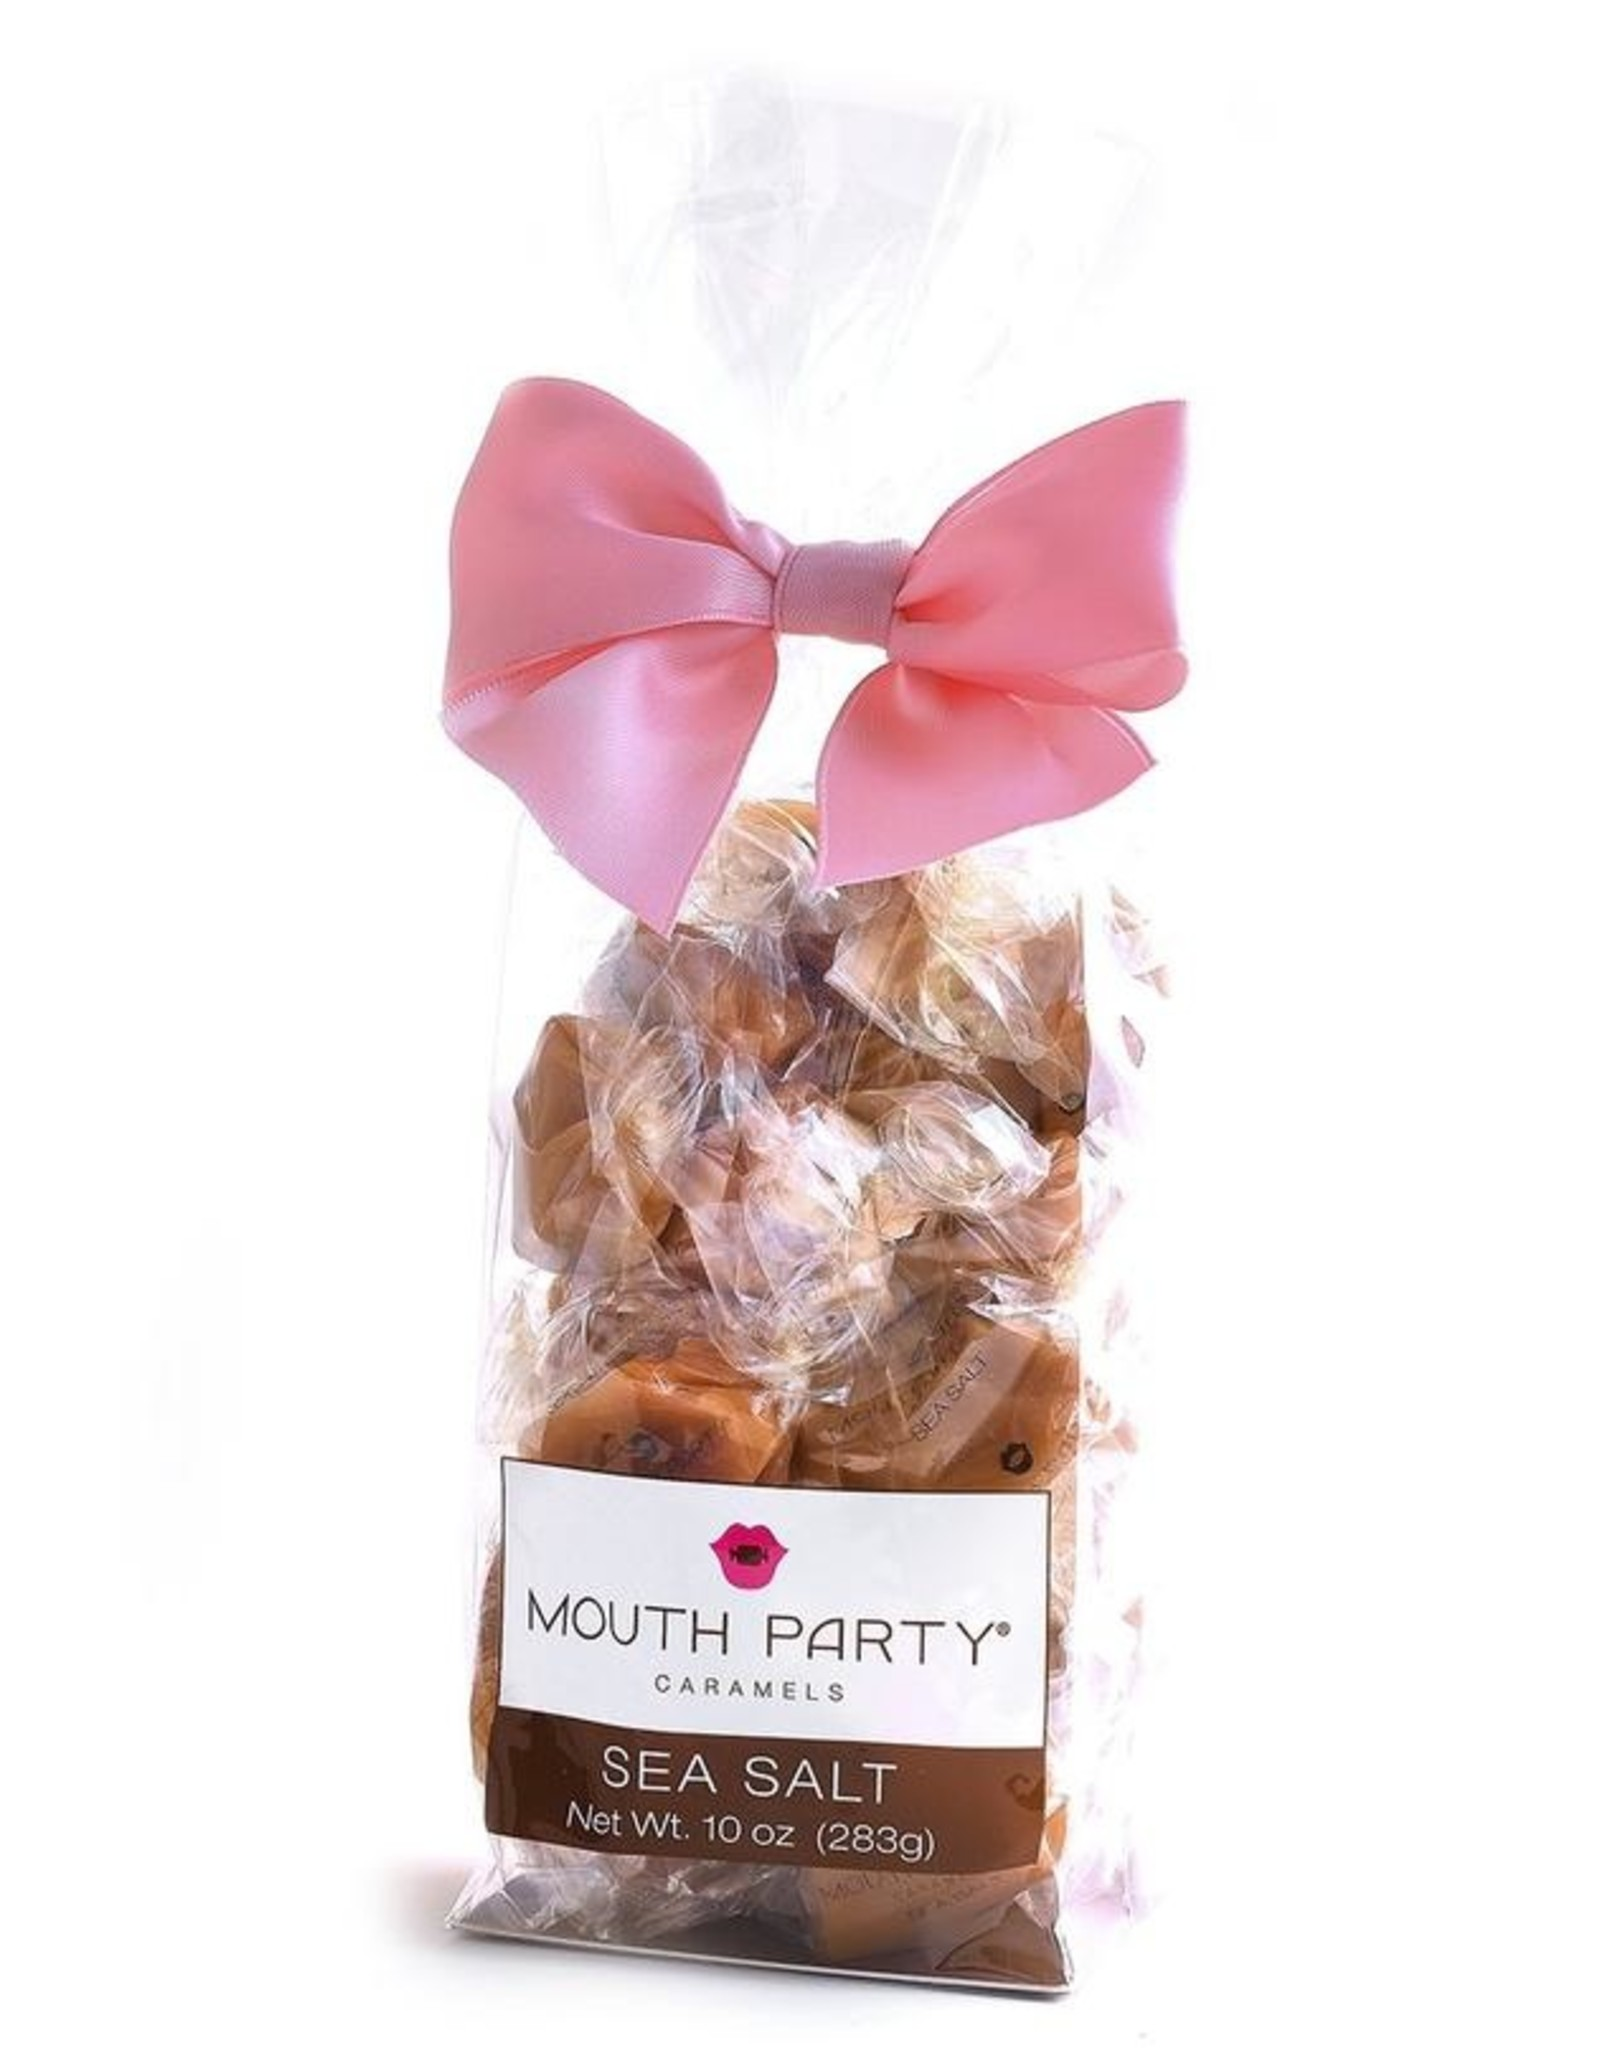 Mouth Party Mouth Party 10oz